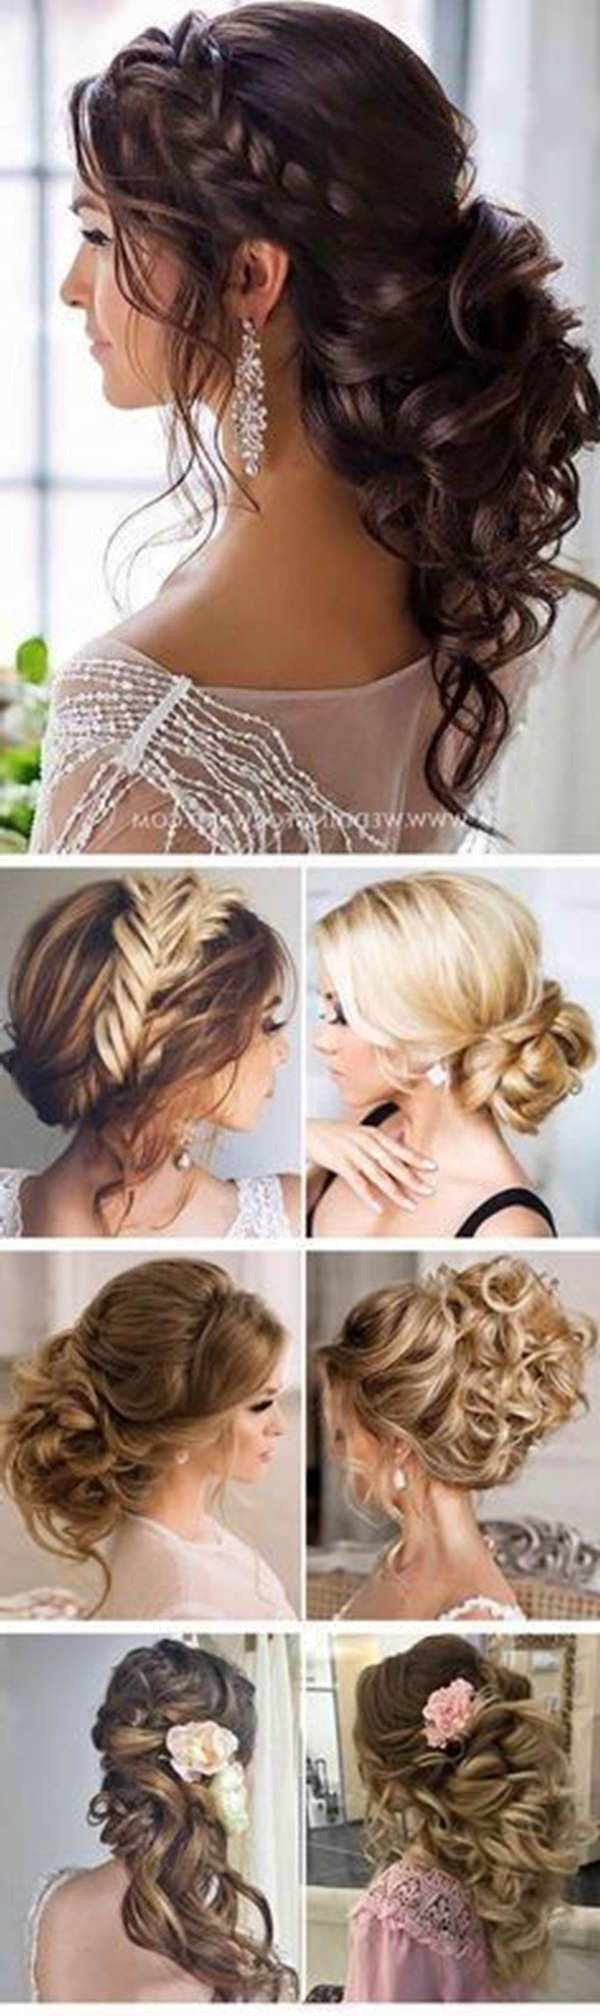 154 Updos For Long Hair Featuring Beautiful Braids And Buns Intended For Most Up To Date Classic Prom Updos With Thick Accent Braid (Gallery 20 of 20)